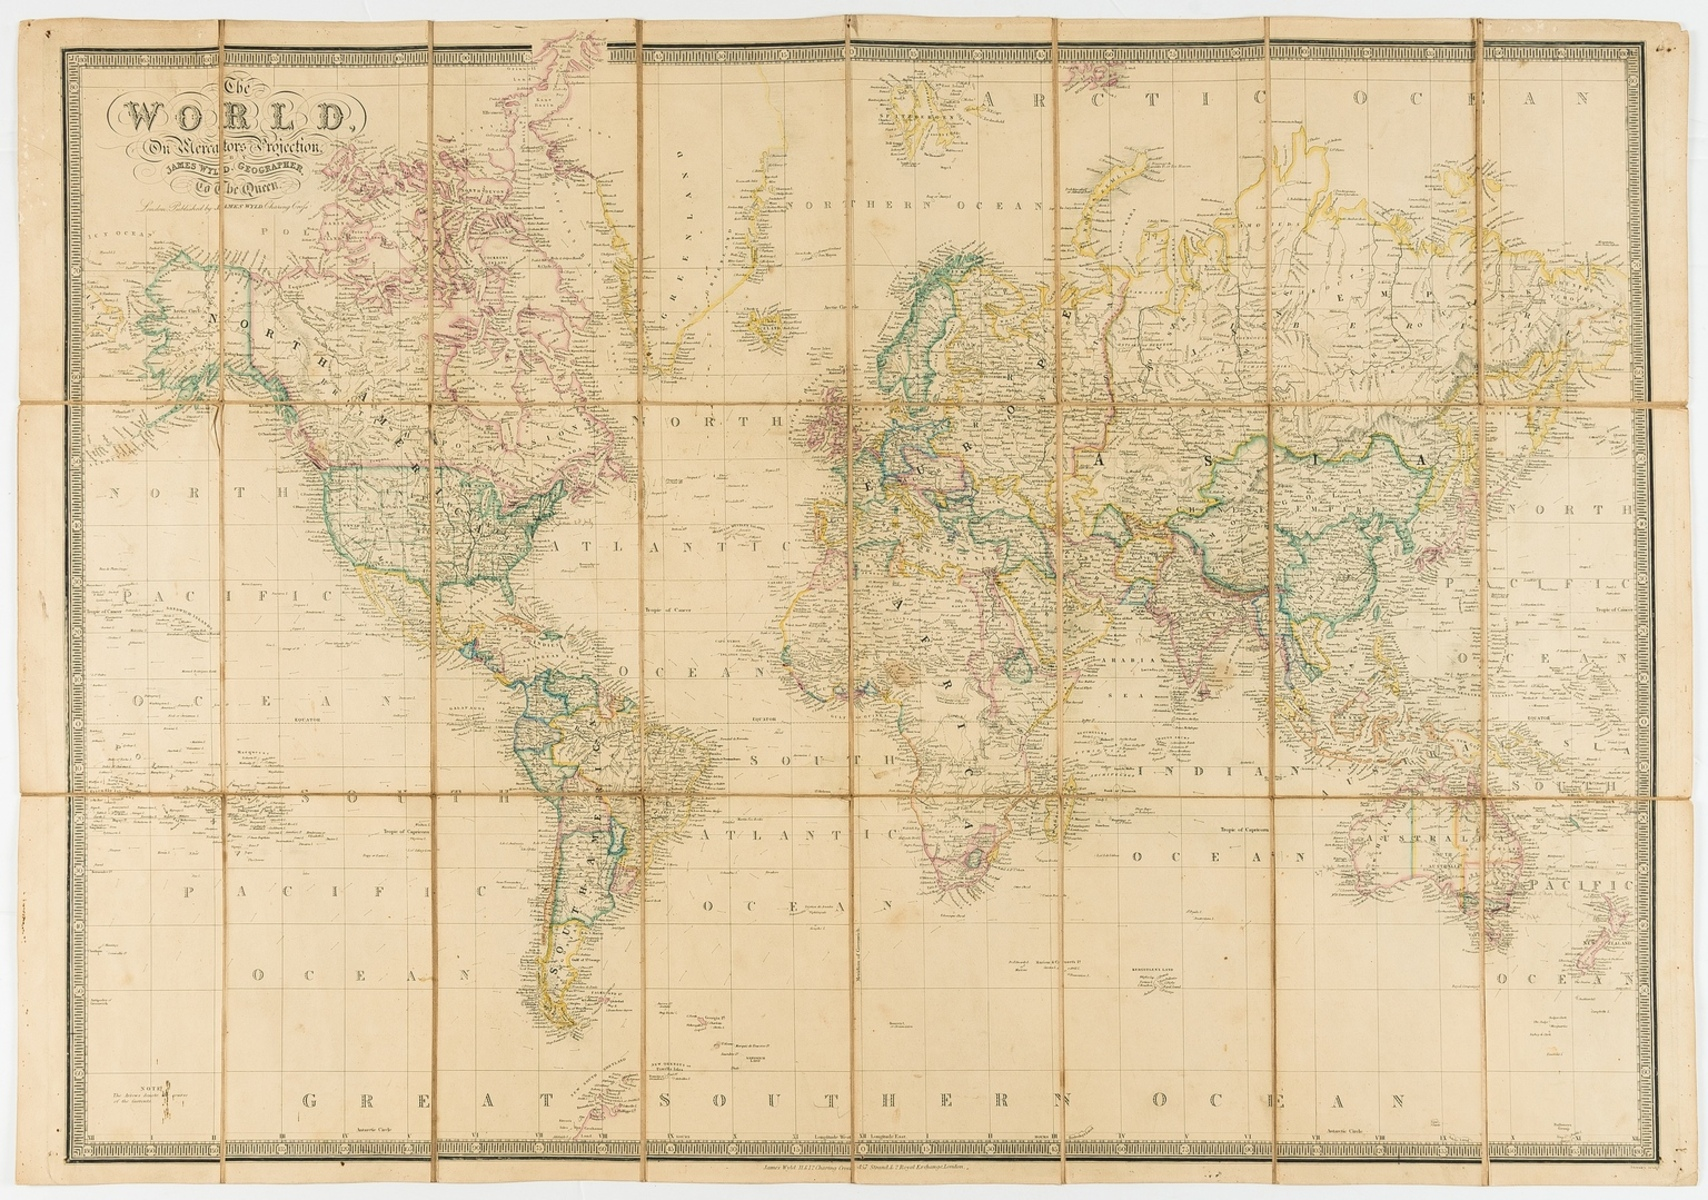 World.- Wyld (James) The World On Mercator's Projection, 1880.